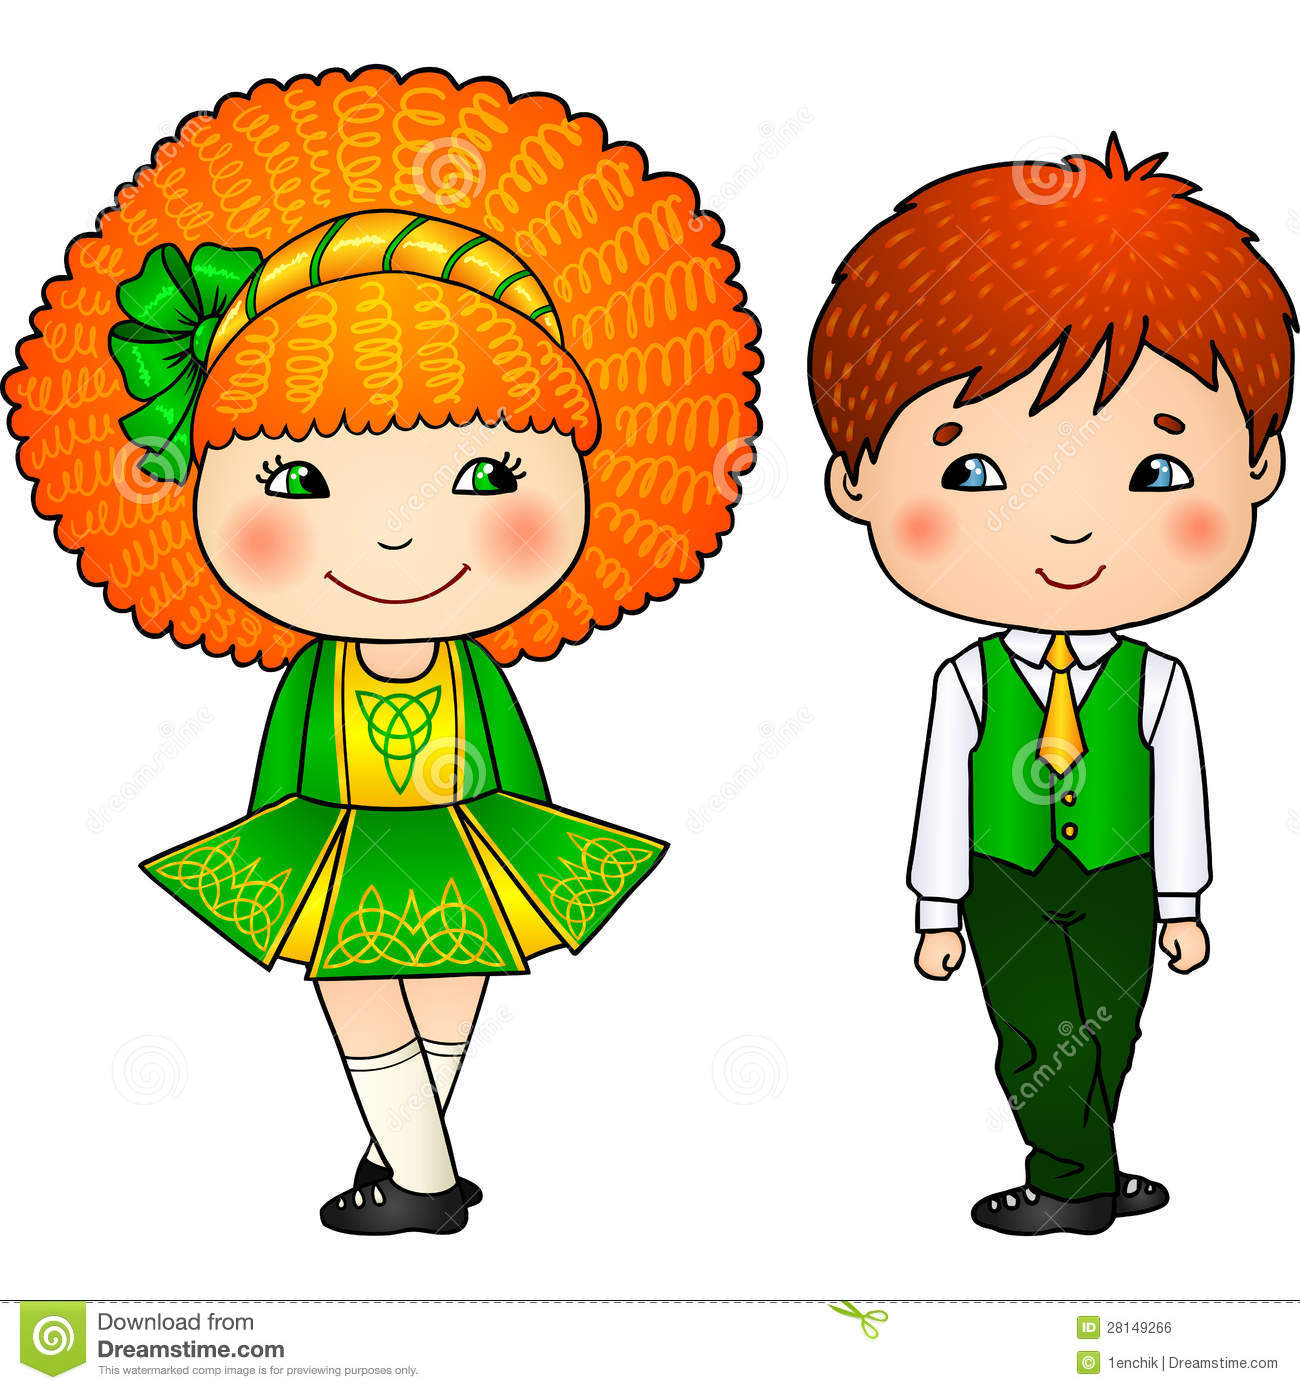 Download comp  sc 1 st  Dreamstime.com & Irish Dancing Kids In Traditional Costumes Stock Vector ...